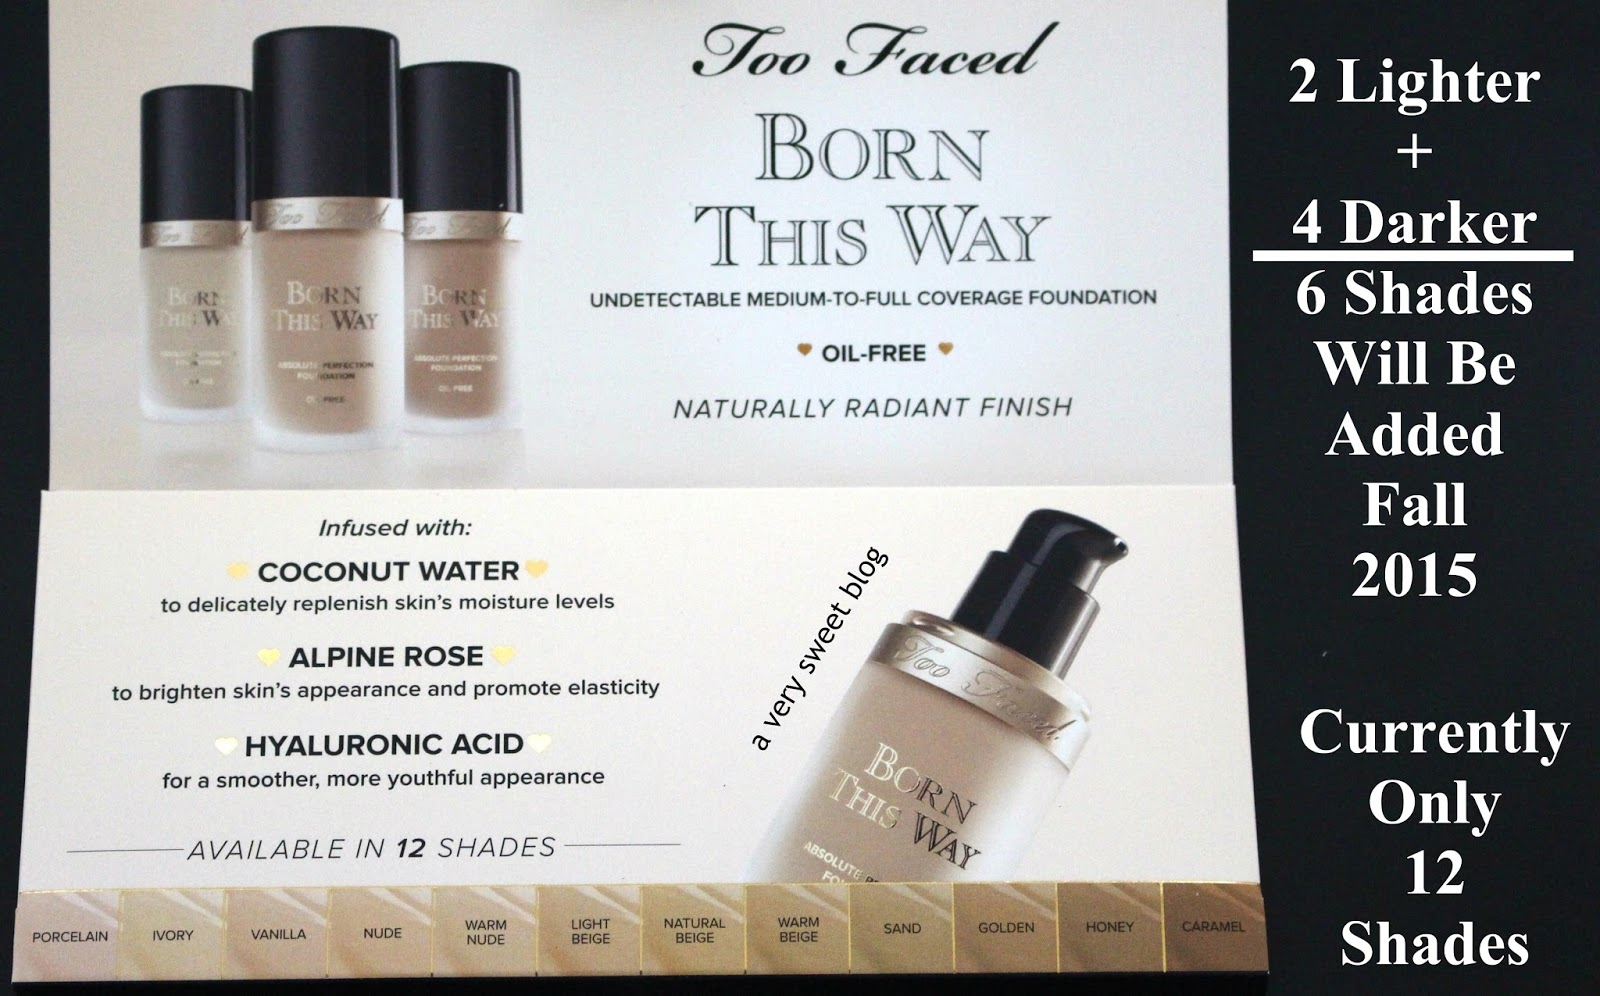 Too Faced Born This Way Foundation is Sweet